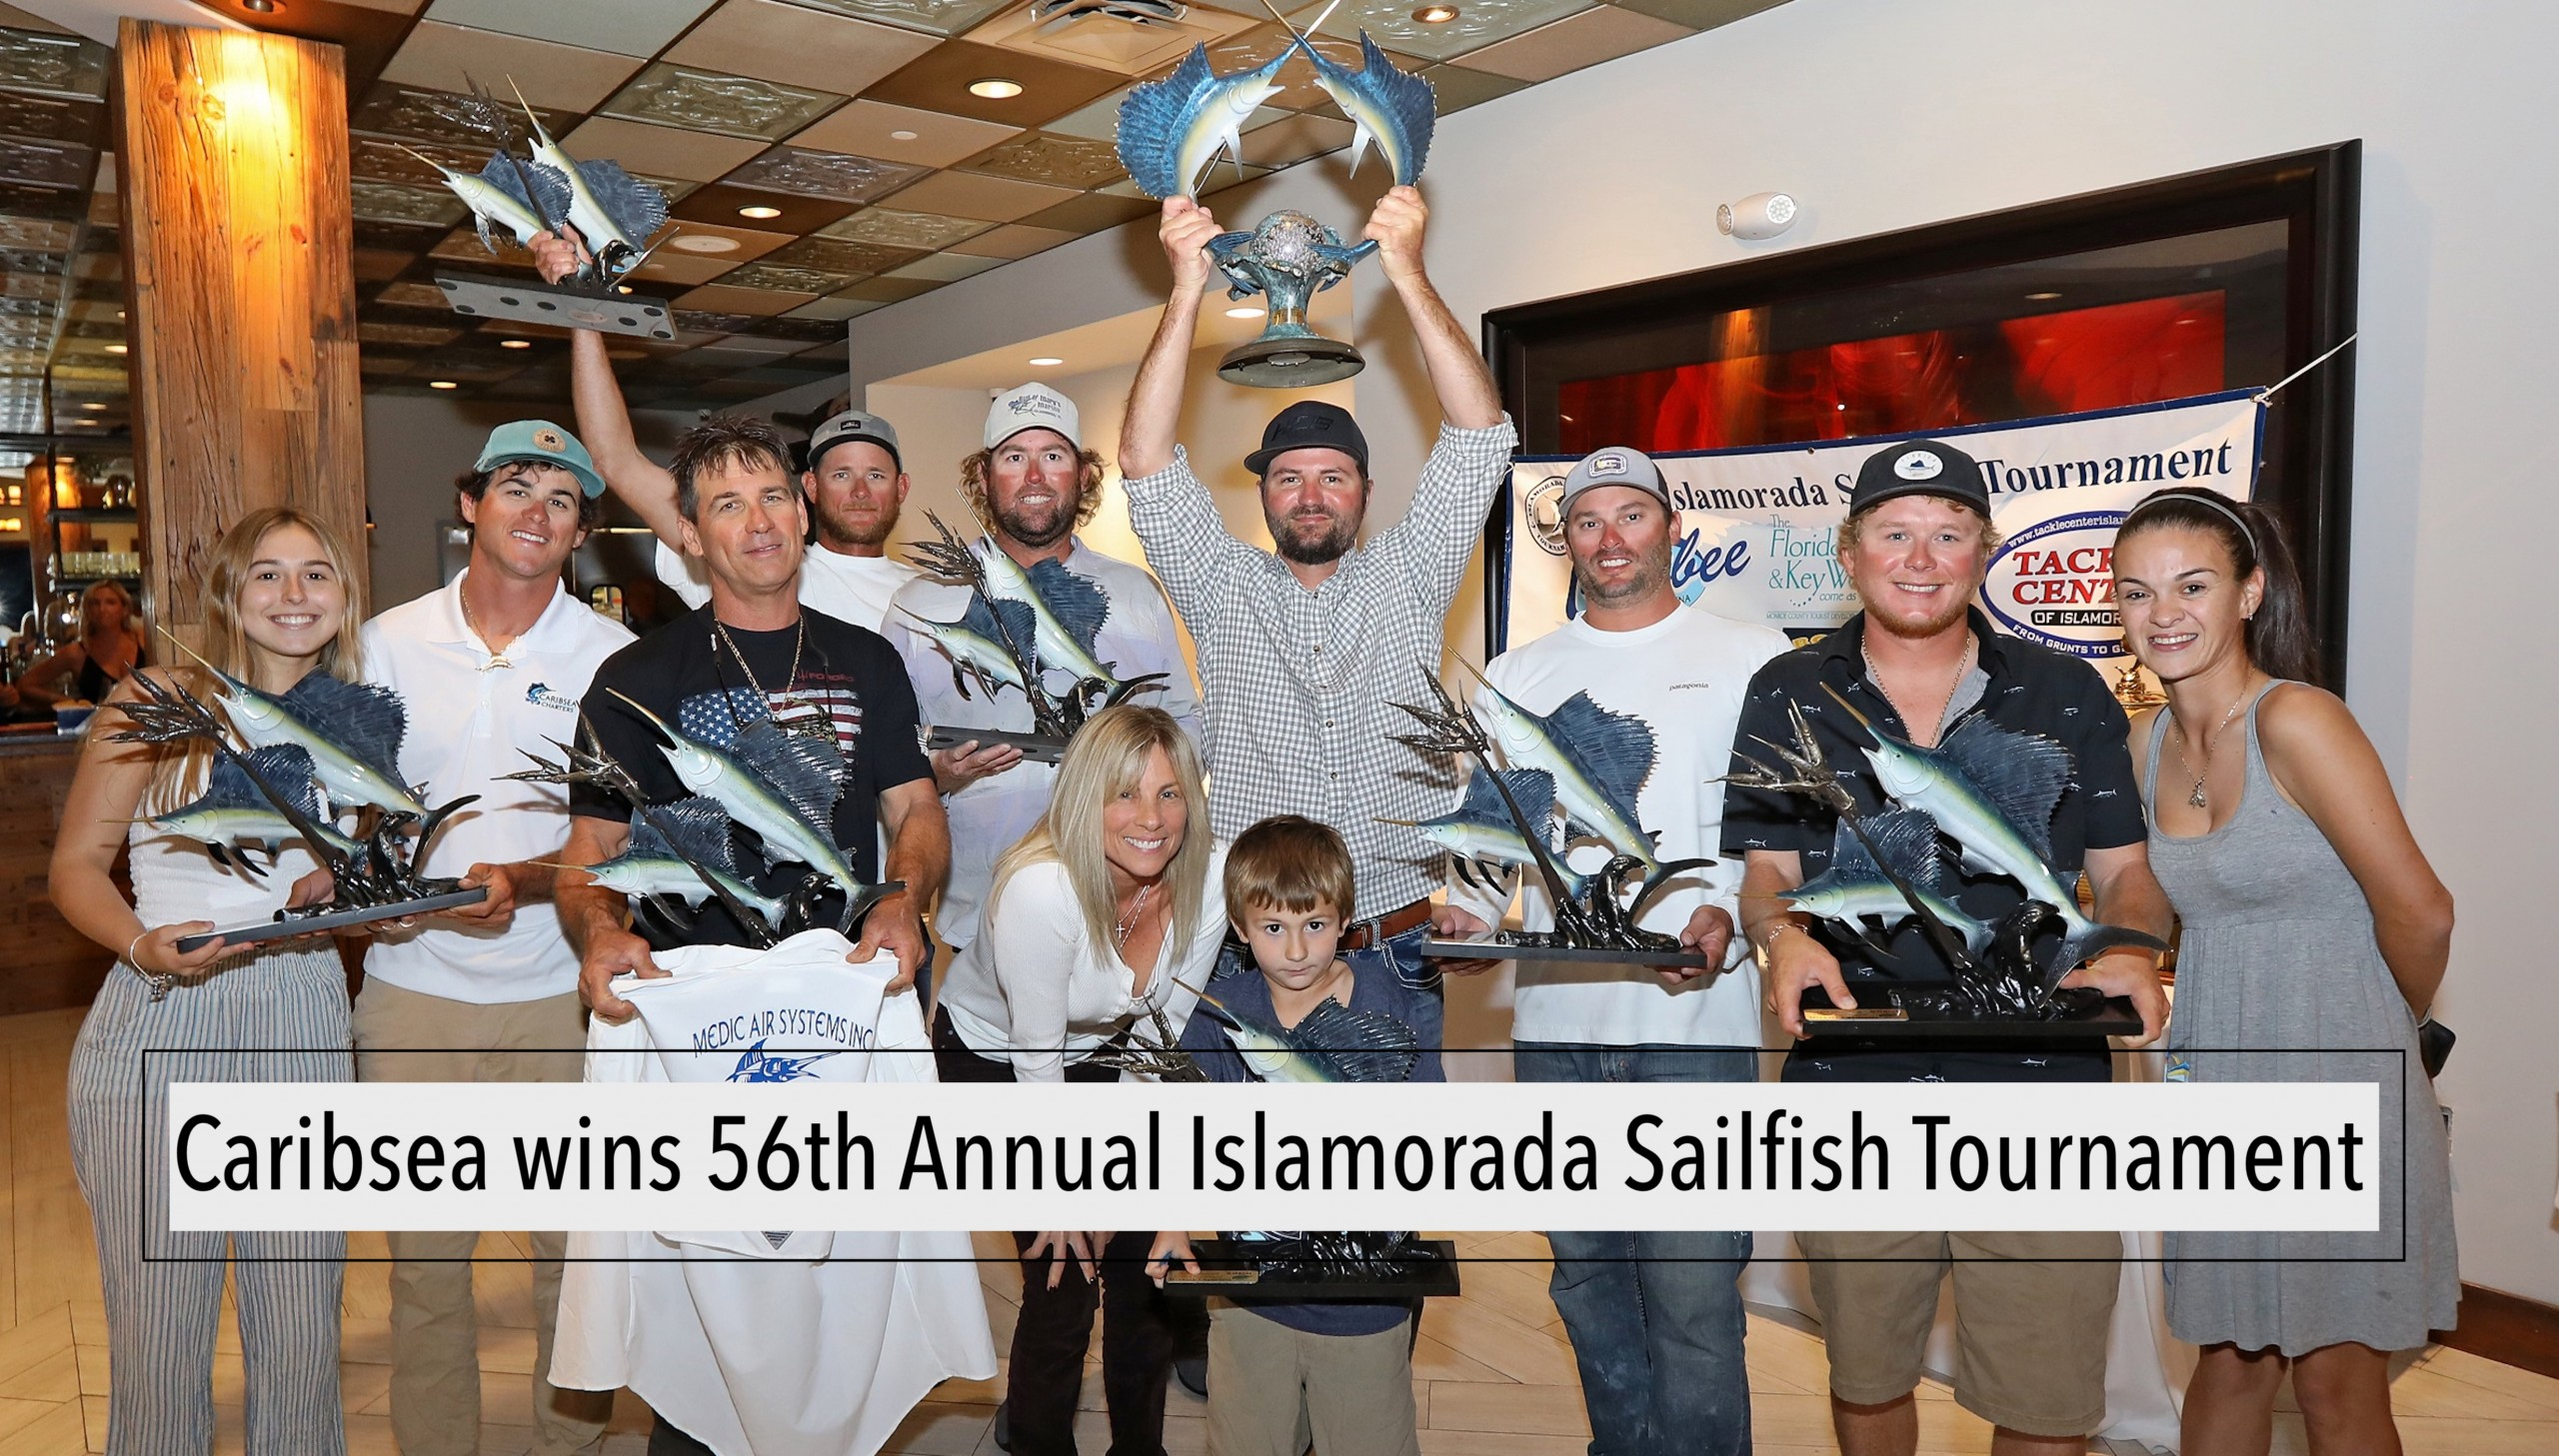 Caribsea wins 56th Annual Islamorada Sailfish Tournament